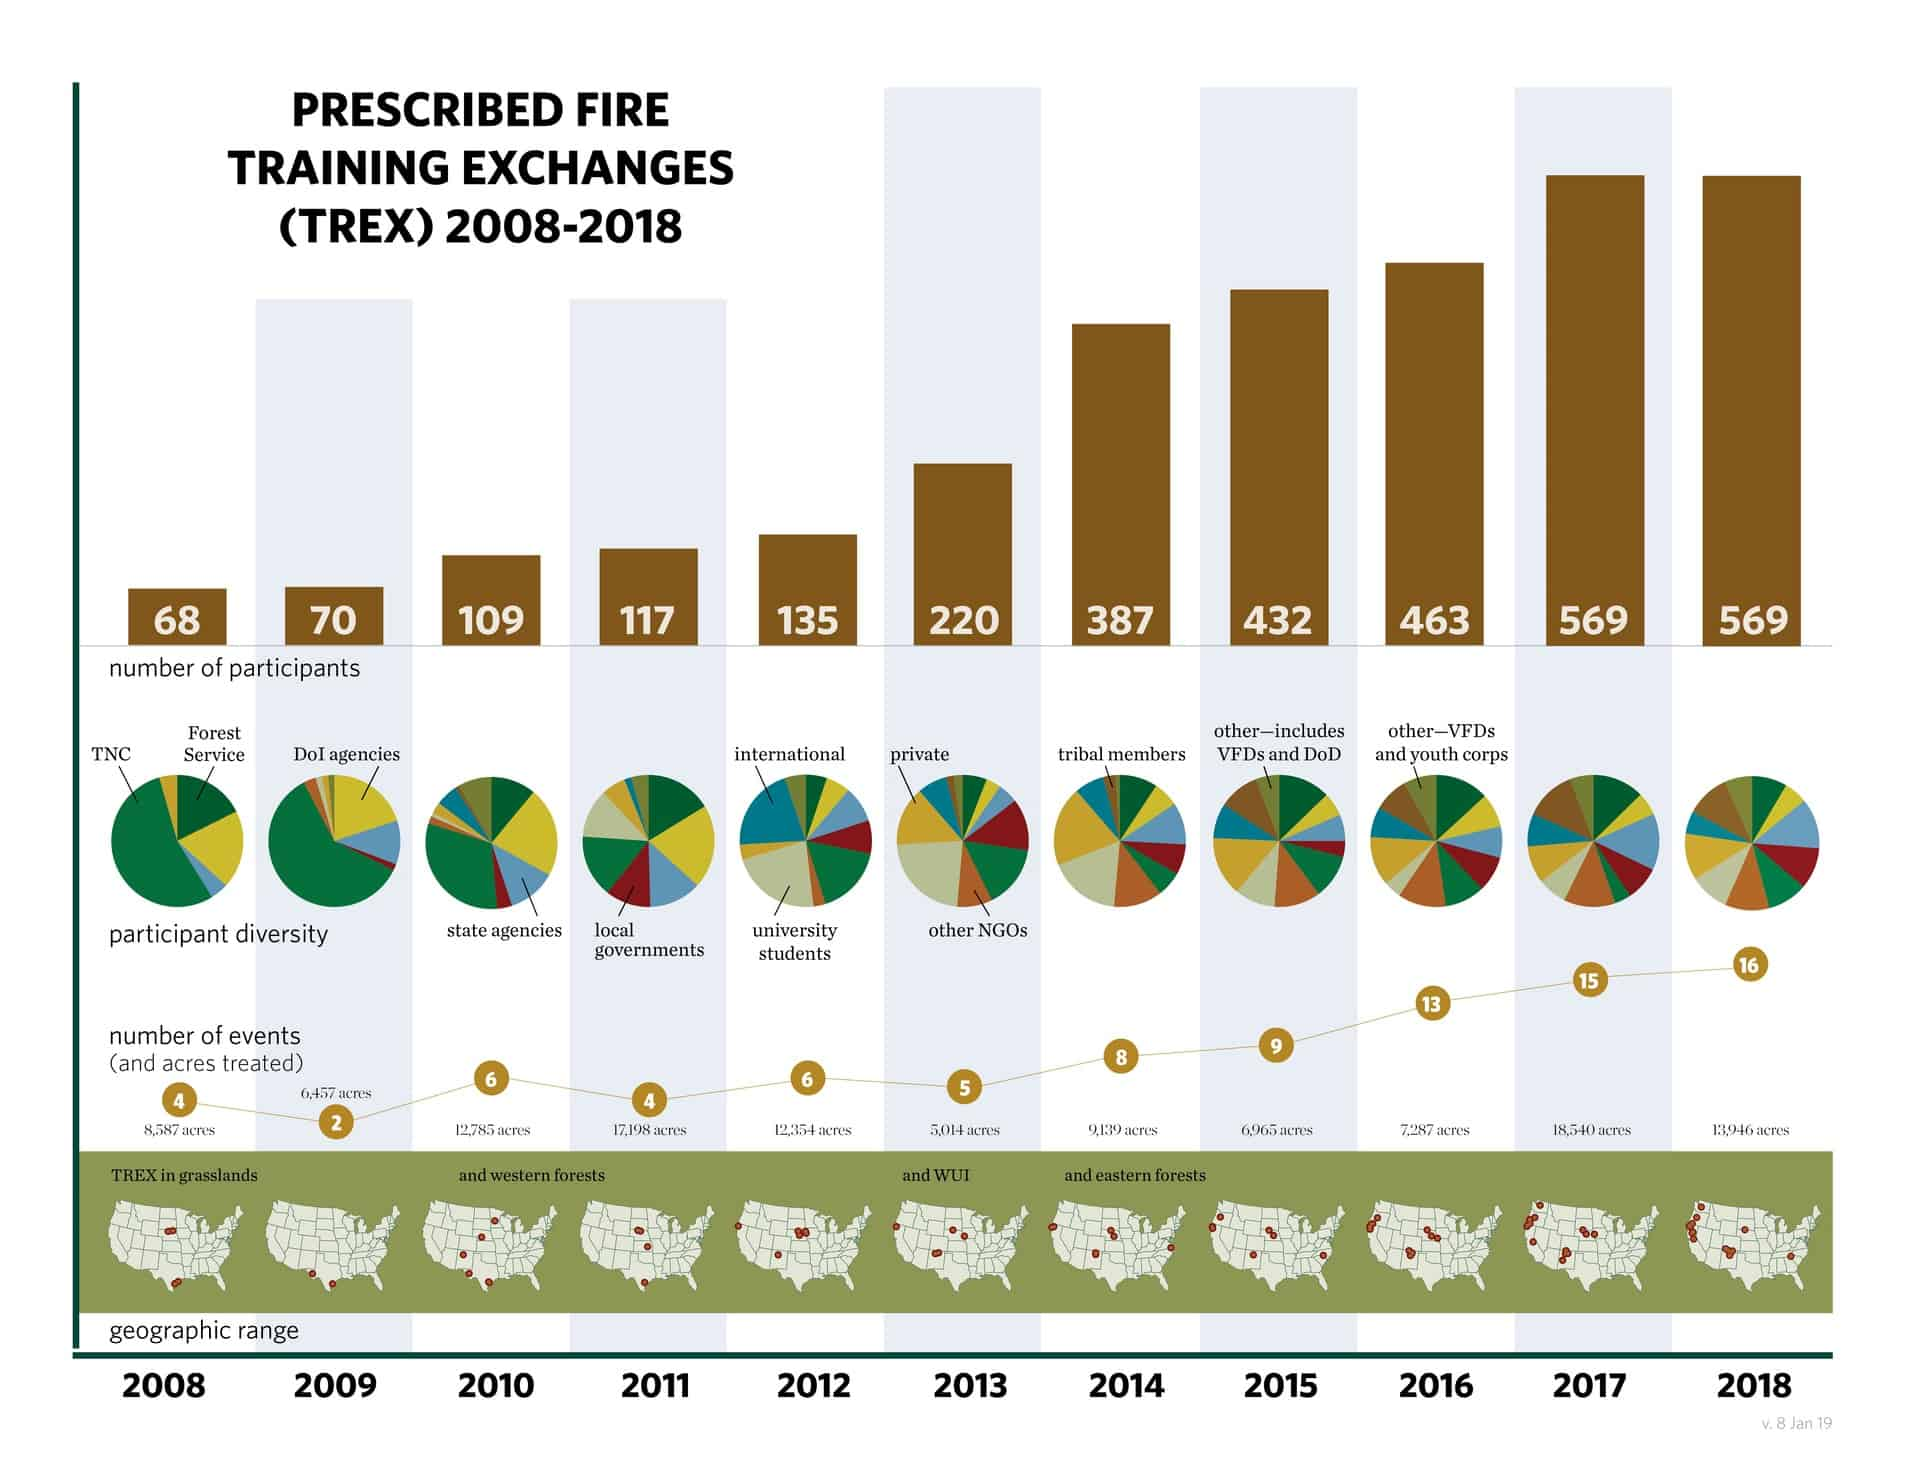 TREX participants have increased from 68 to 569 in the past 11 years, and each year, TREX has added to the nation's prescribed fire workforce